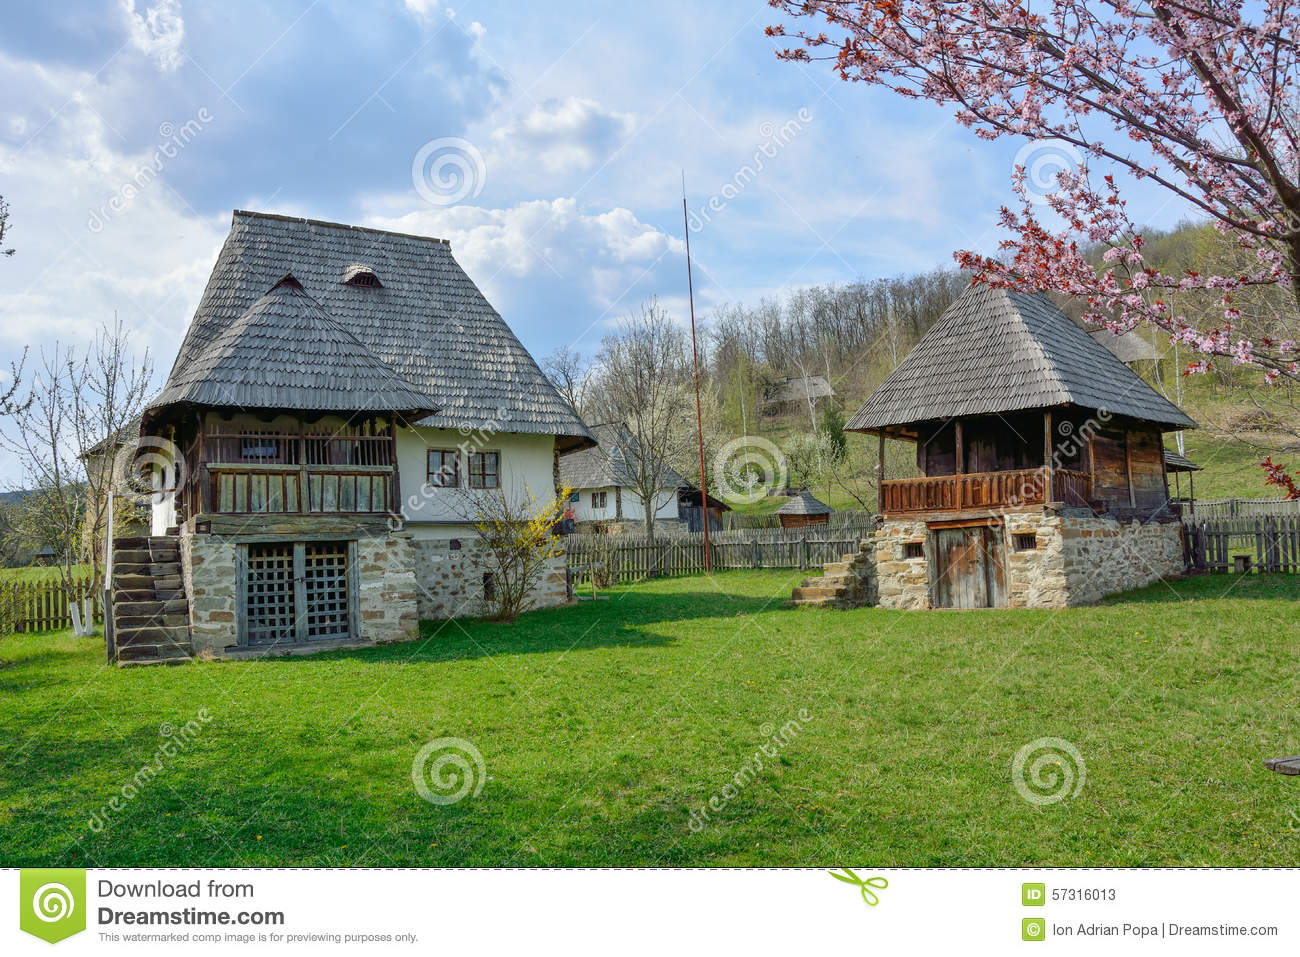 Old romanian peasant houses in village museum valcea romania stock image image 57316013 - Romanian peasant houses ...